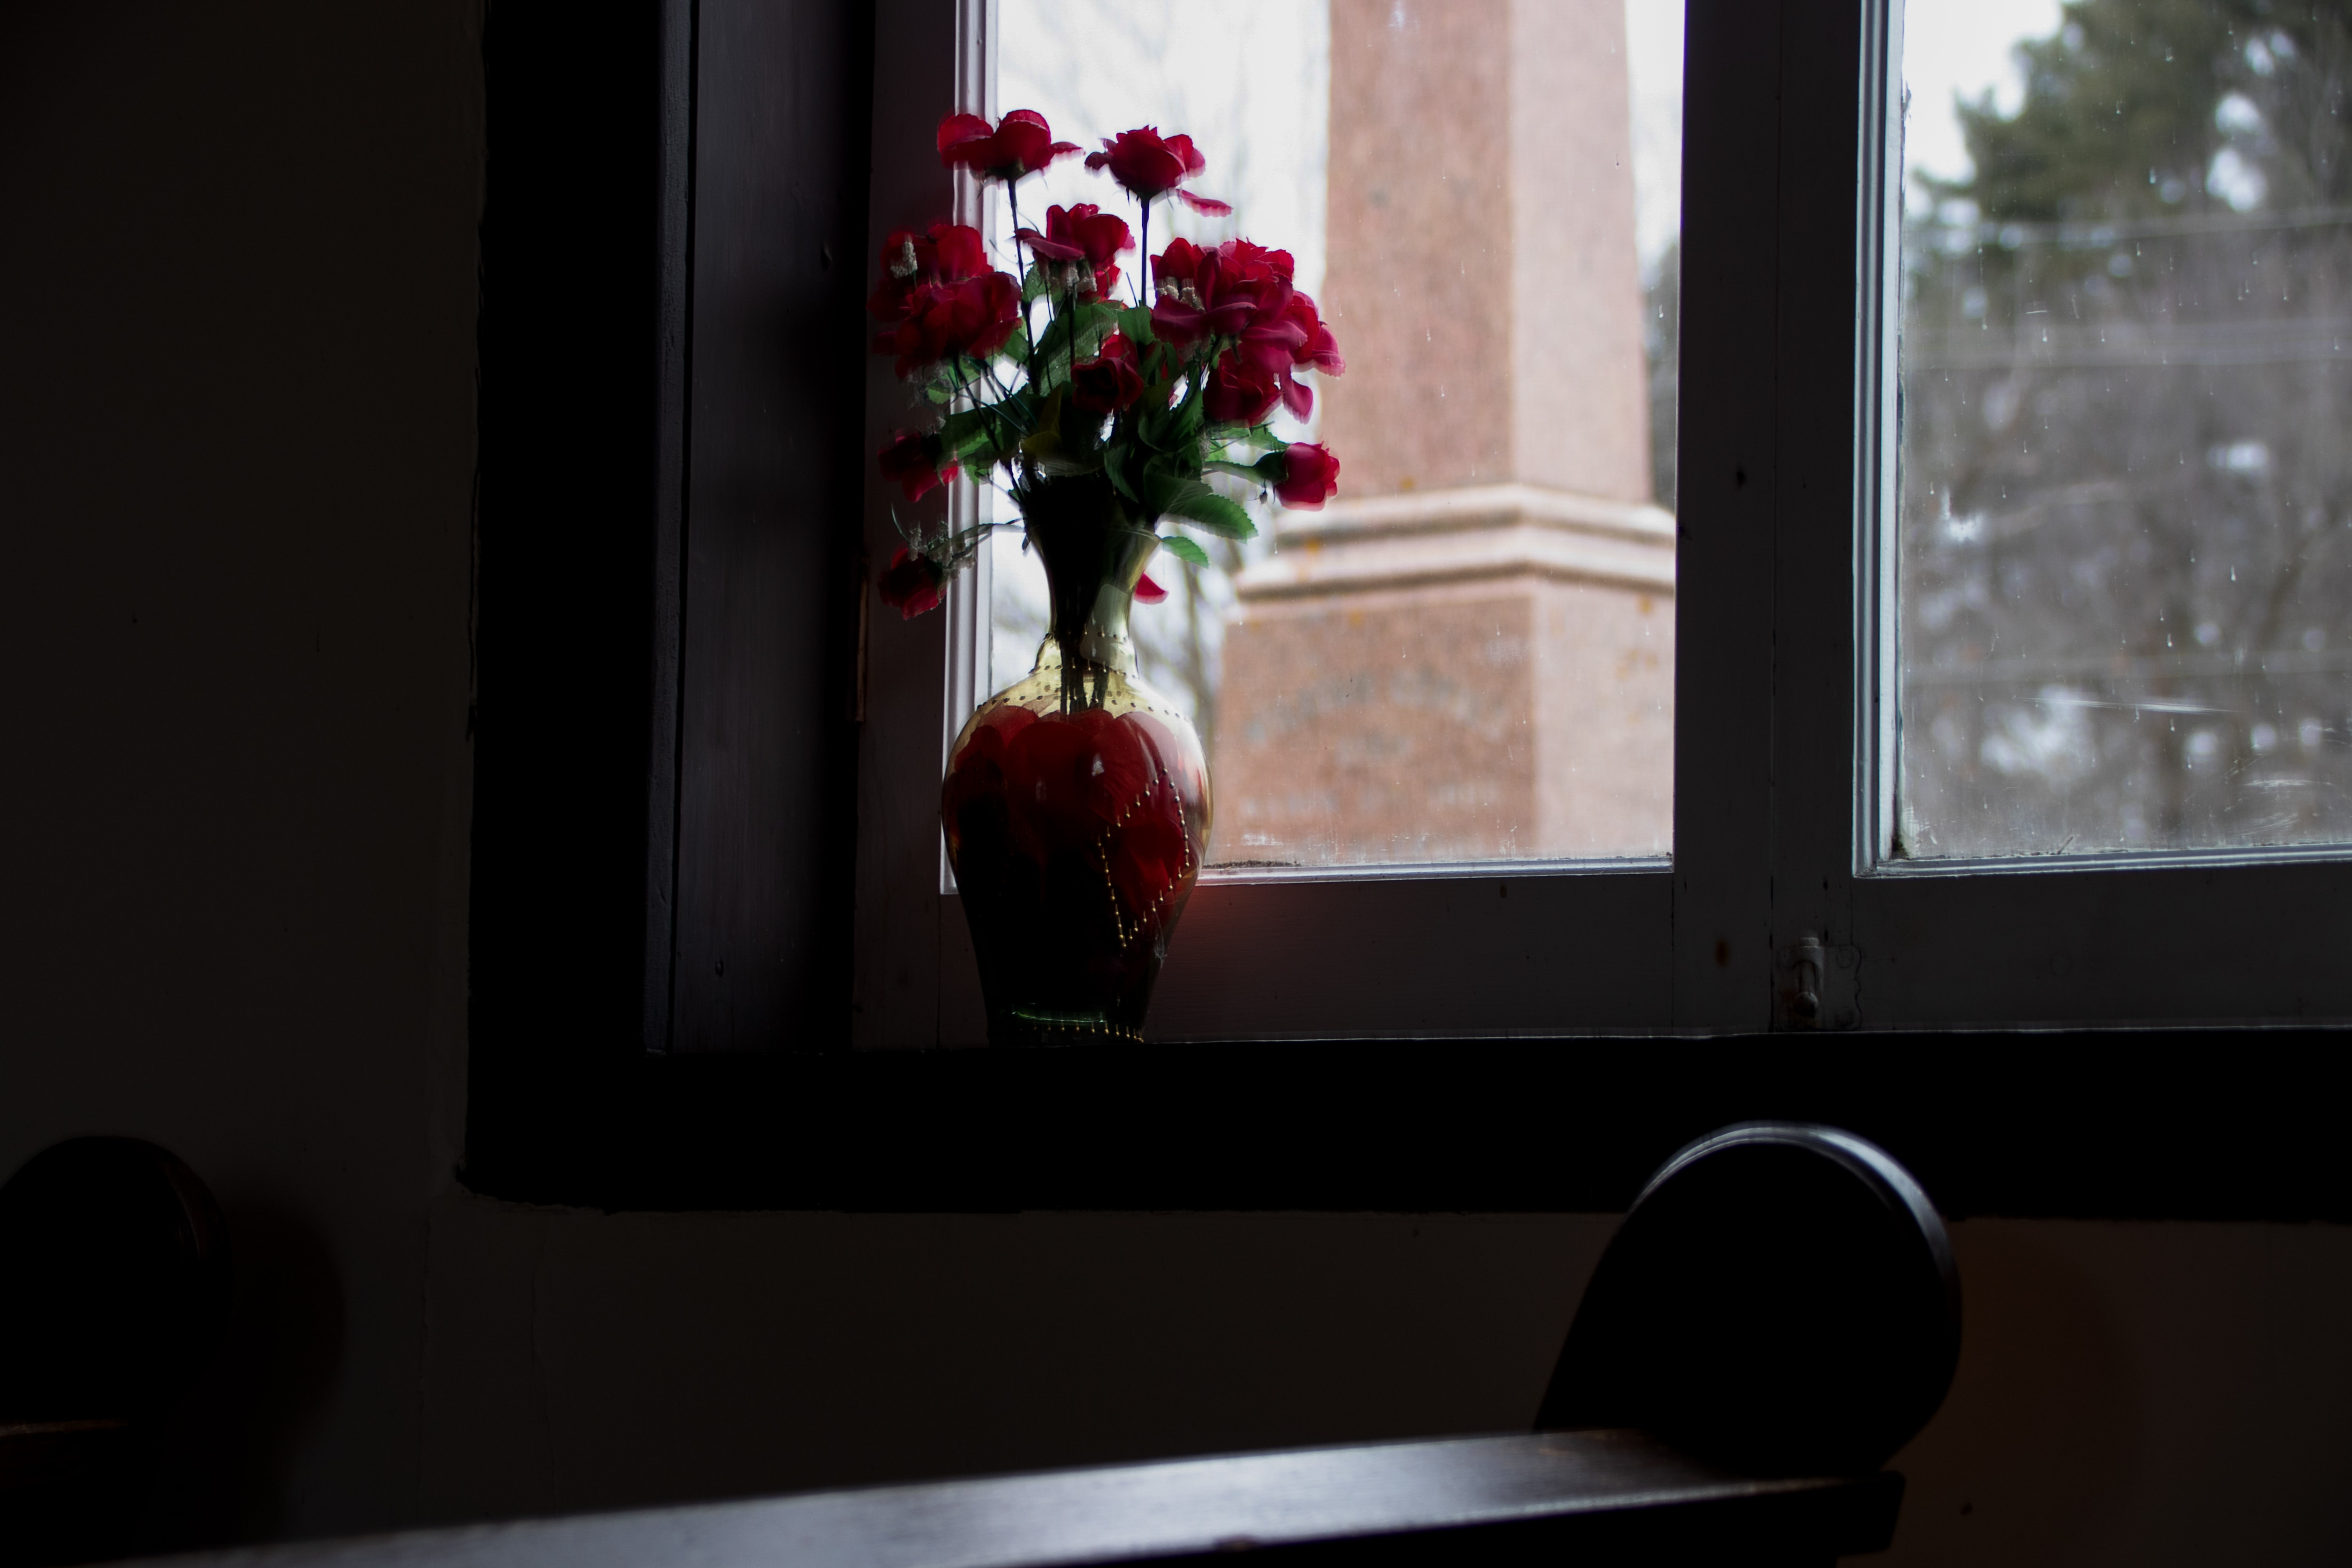 Flowers on a window sill at The Blue Church in Prescott, Ontario